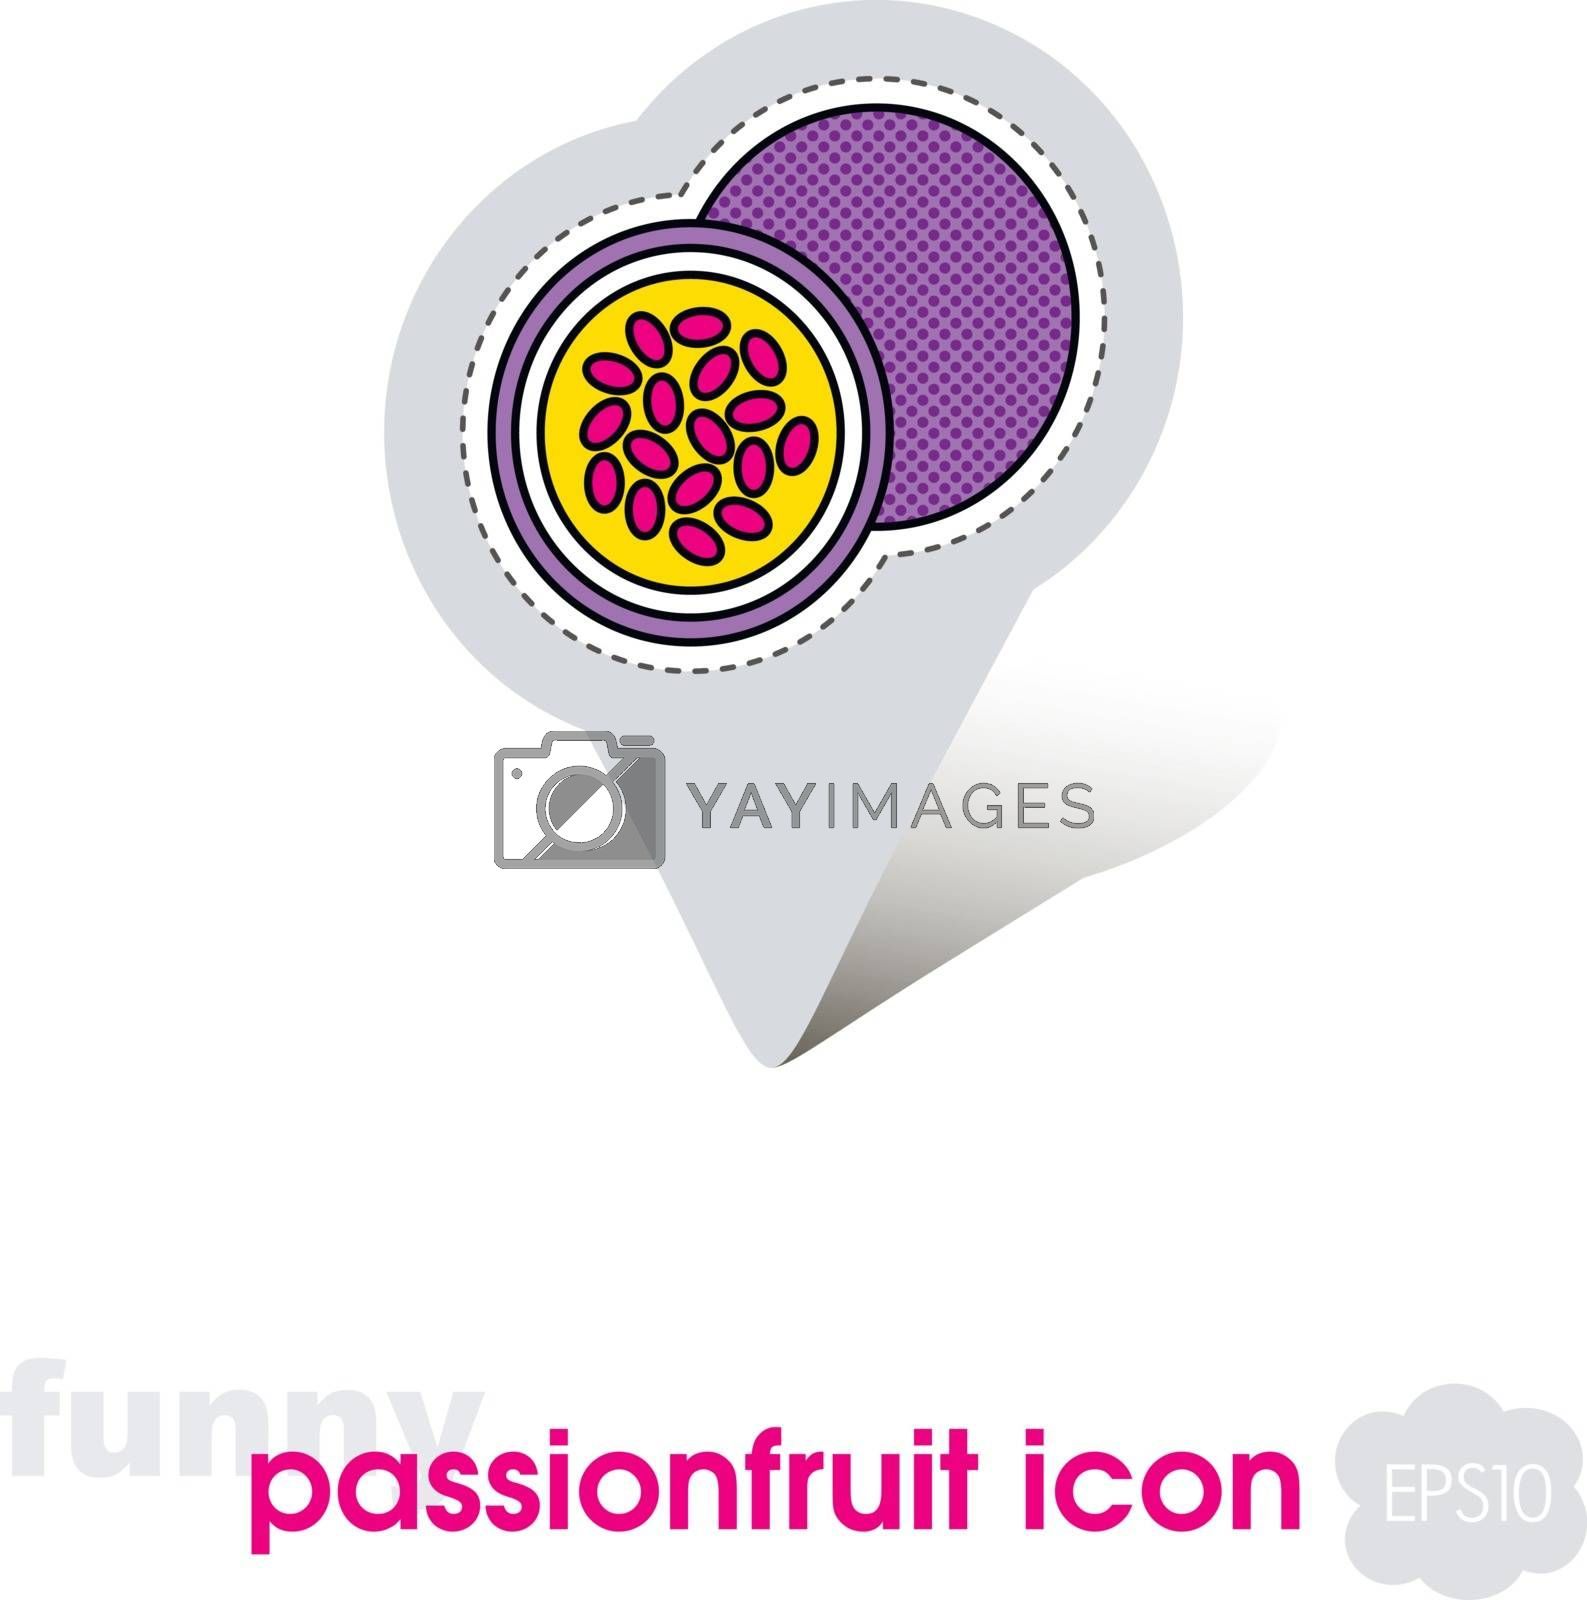 Passionfruit pin map icon. Passionfruit fruit by nosik